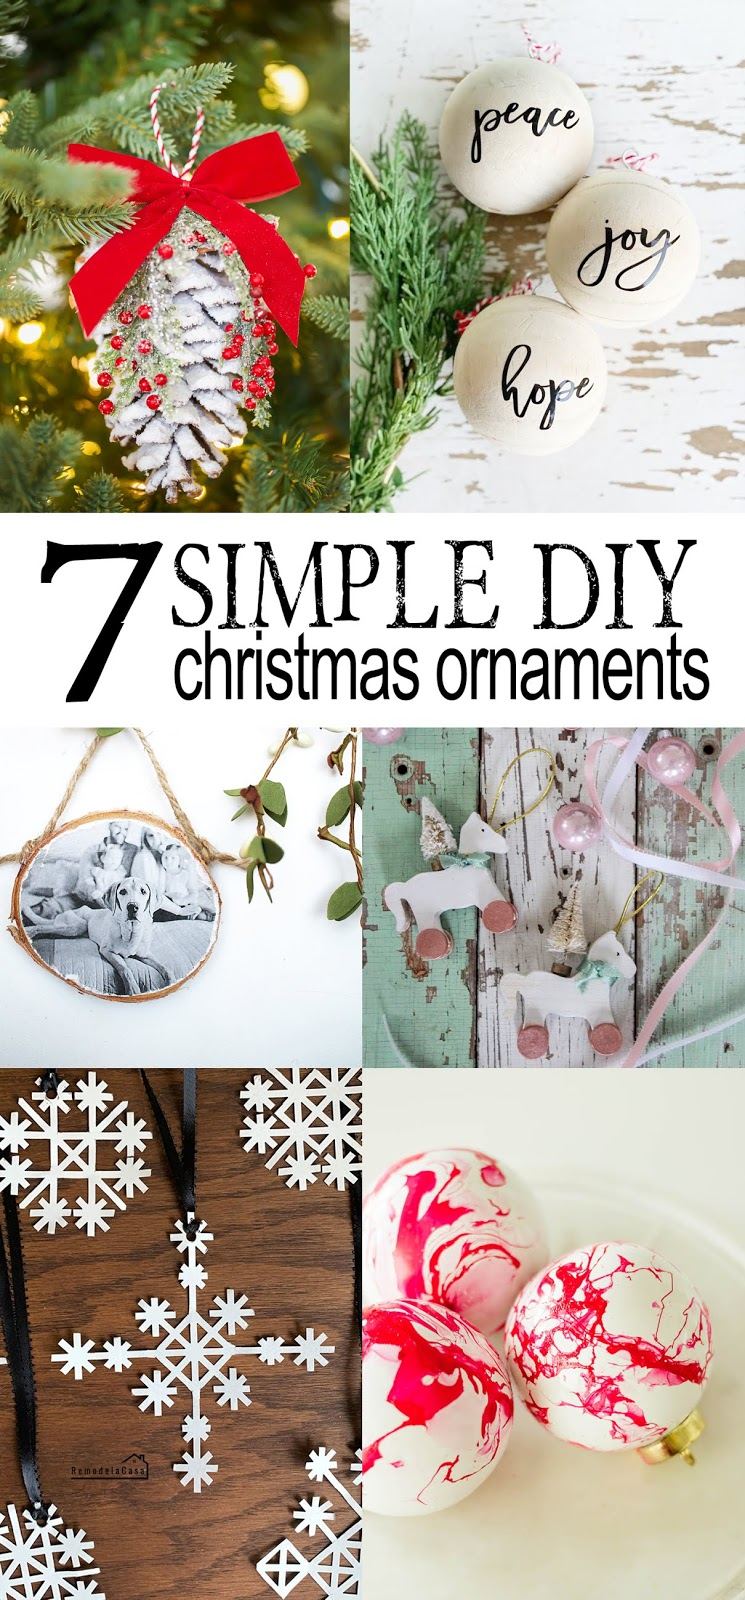 simple diy ornaments ideas